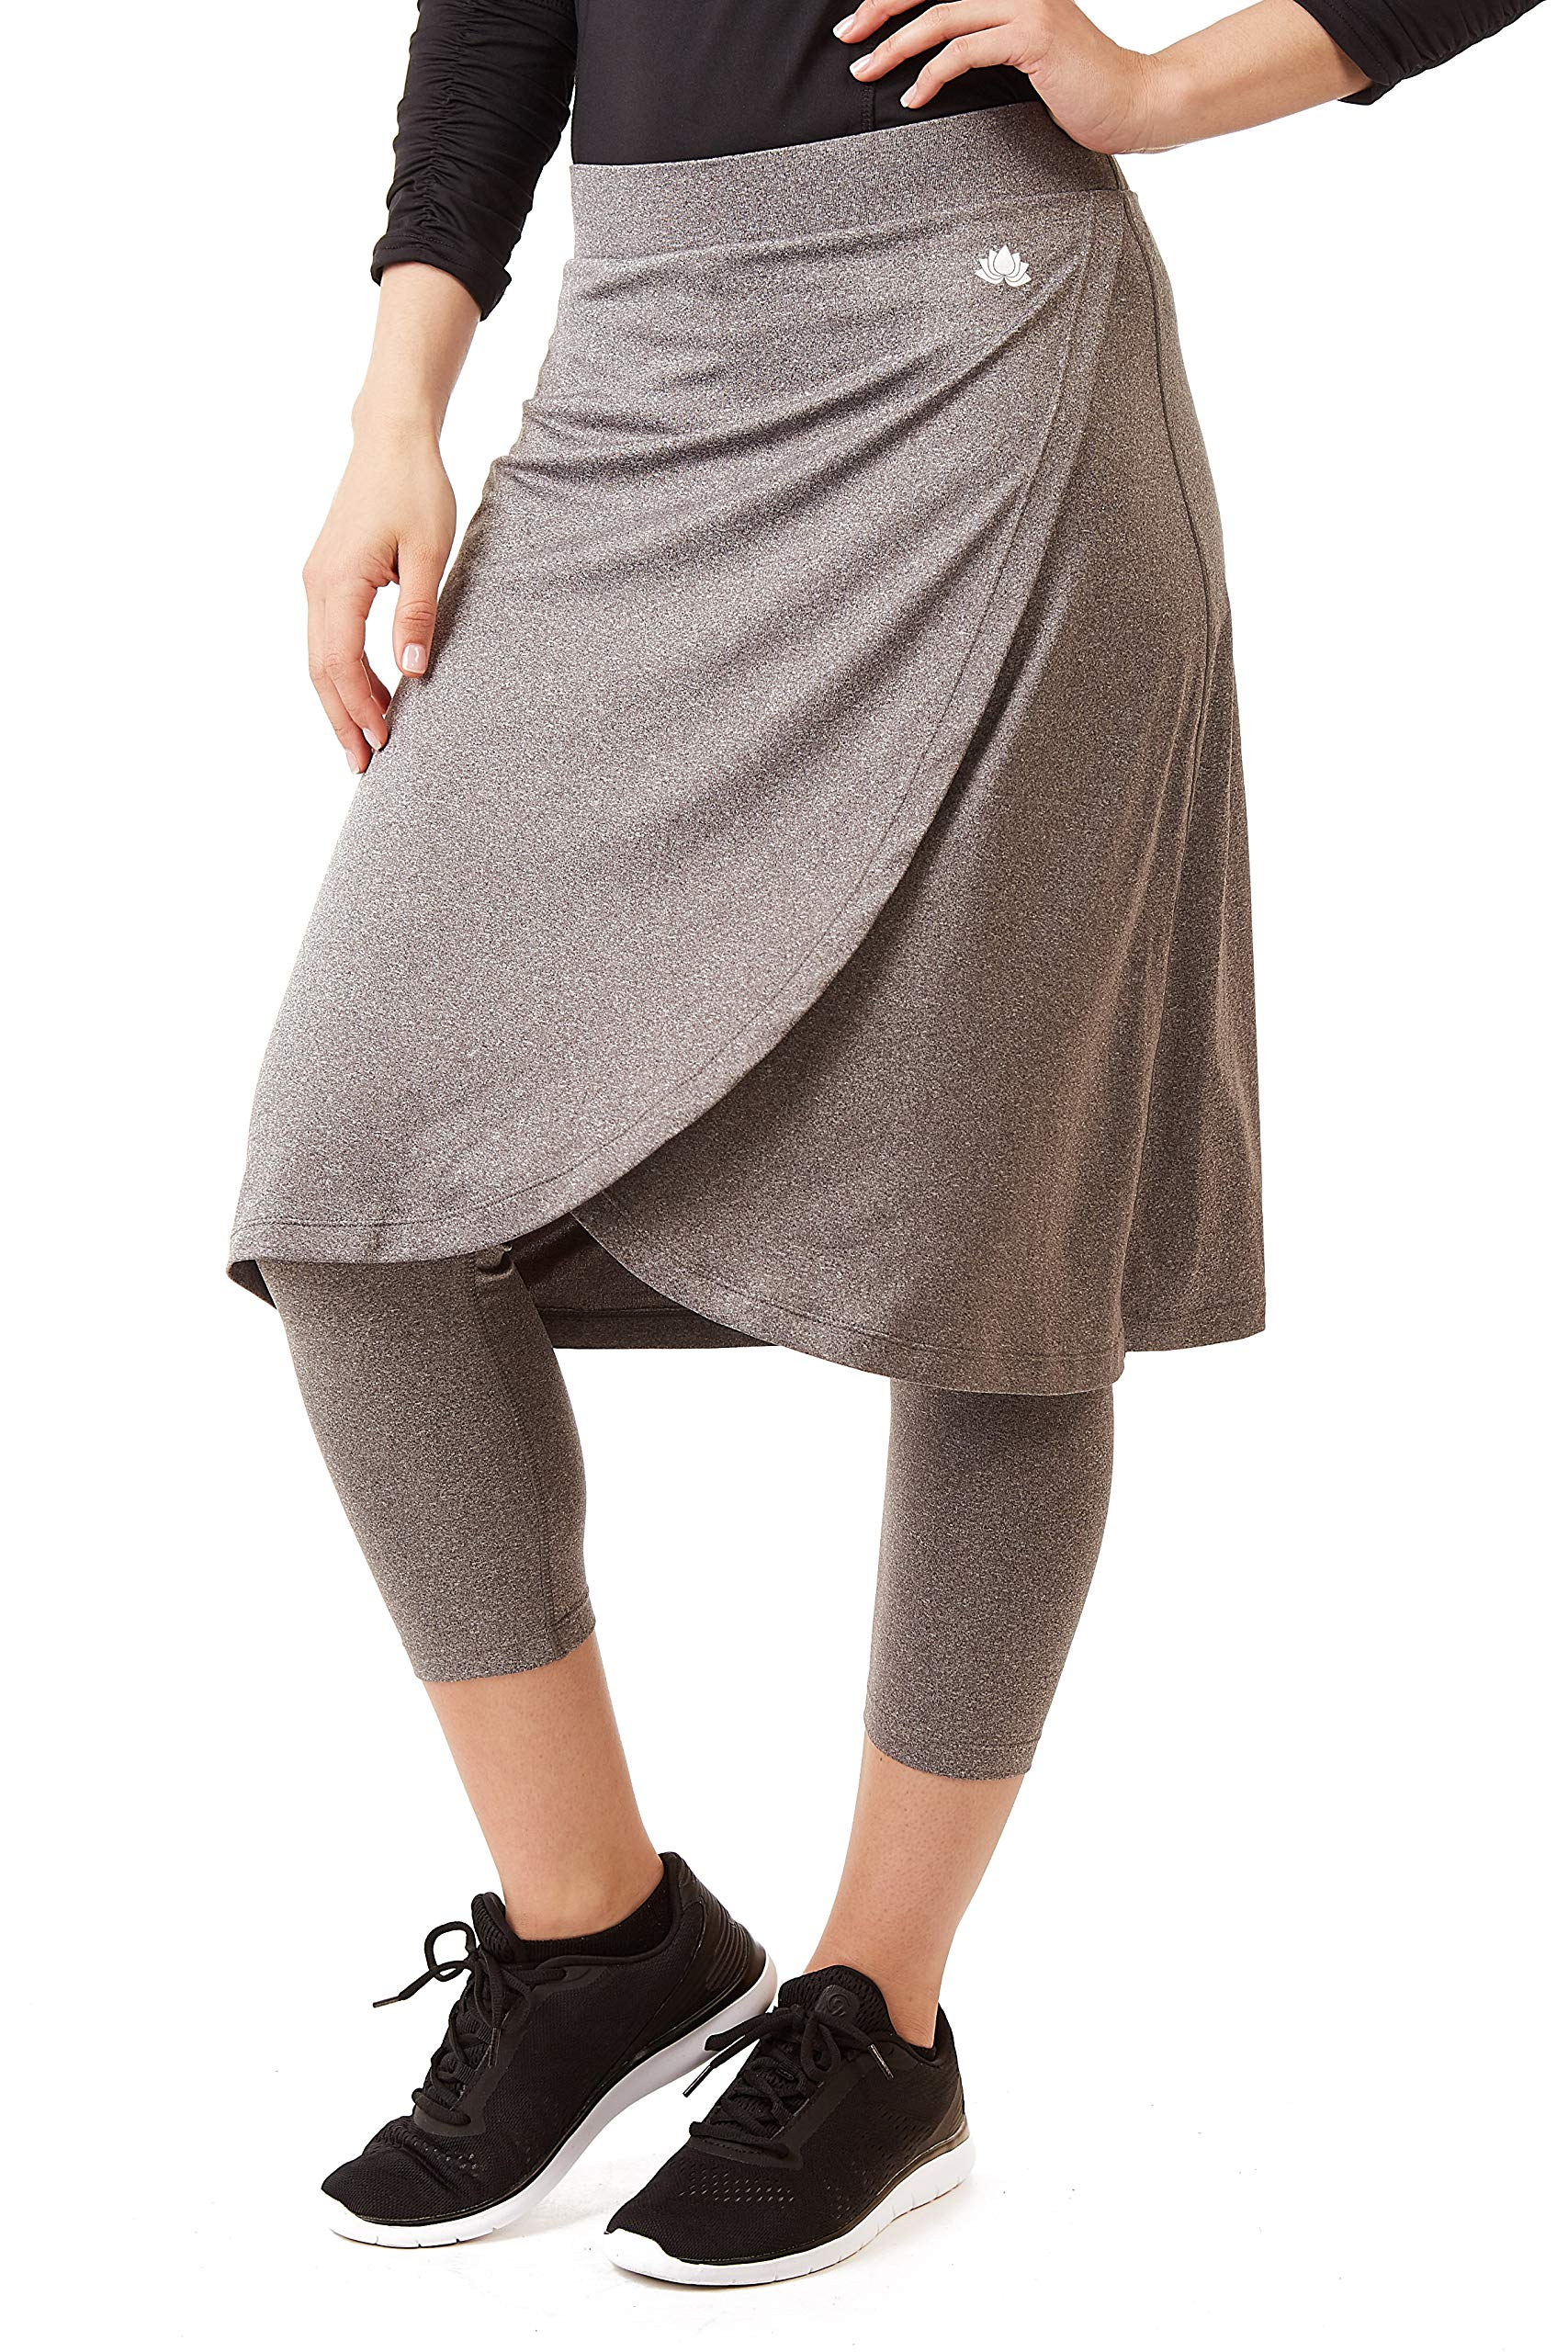 Snoga Modest Workout Faux Wrap 3/4 Length Leggings Attached - Heather Grey, Small